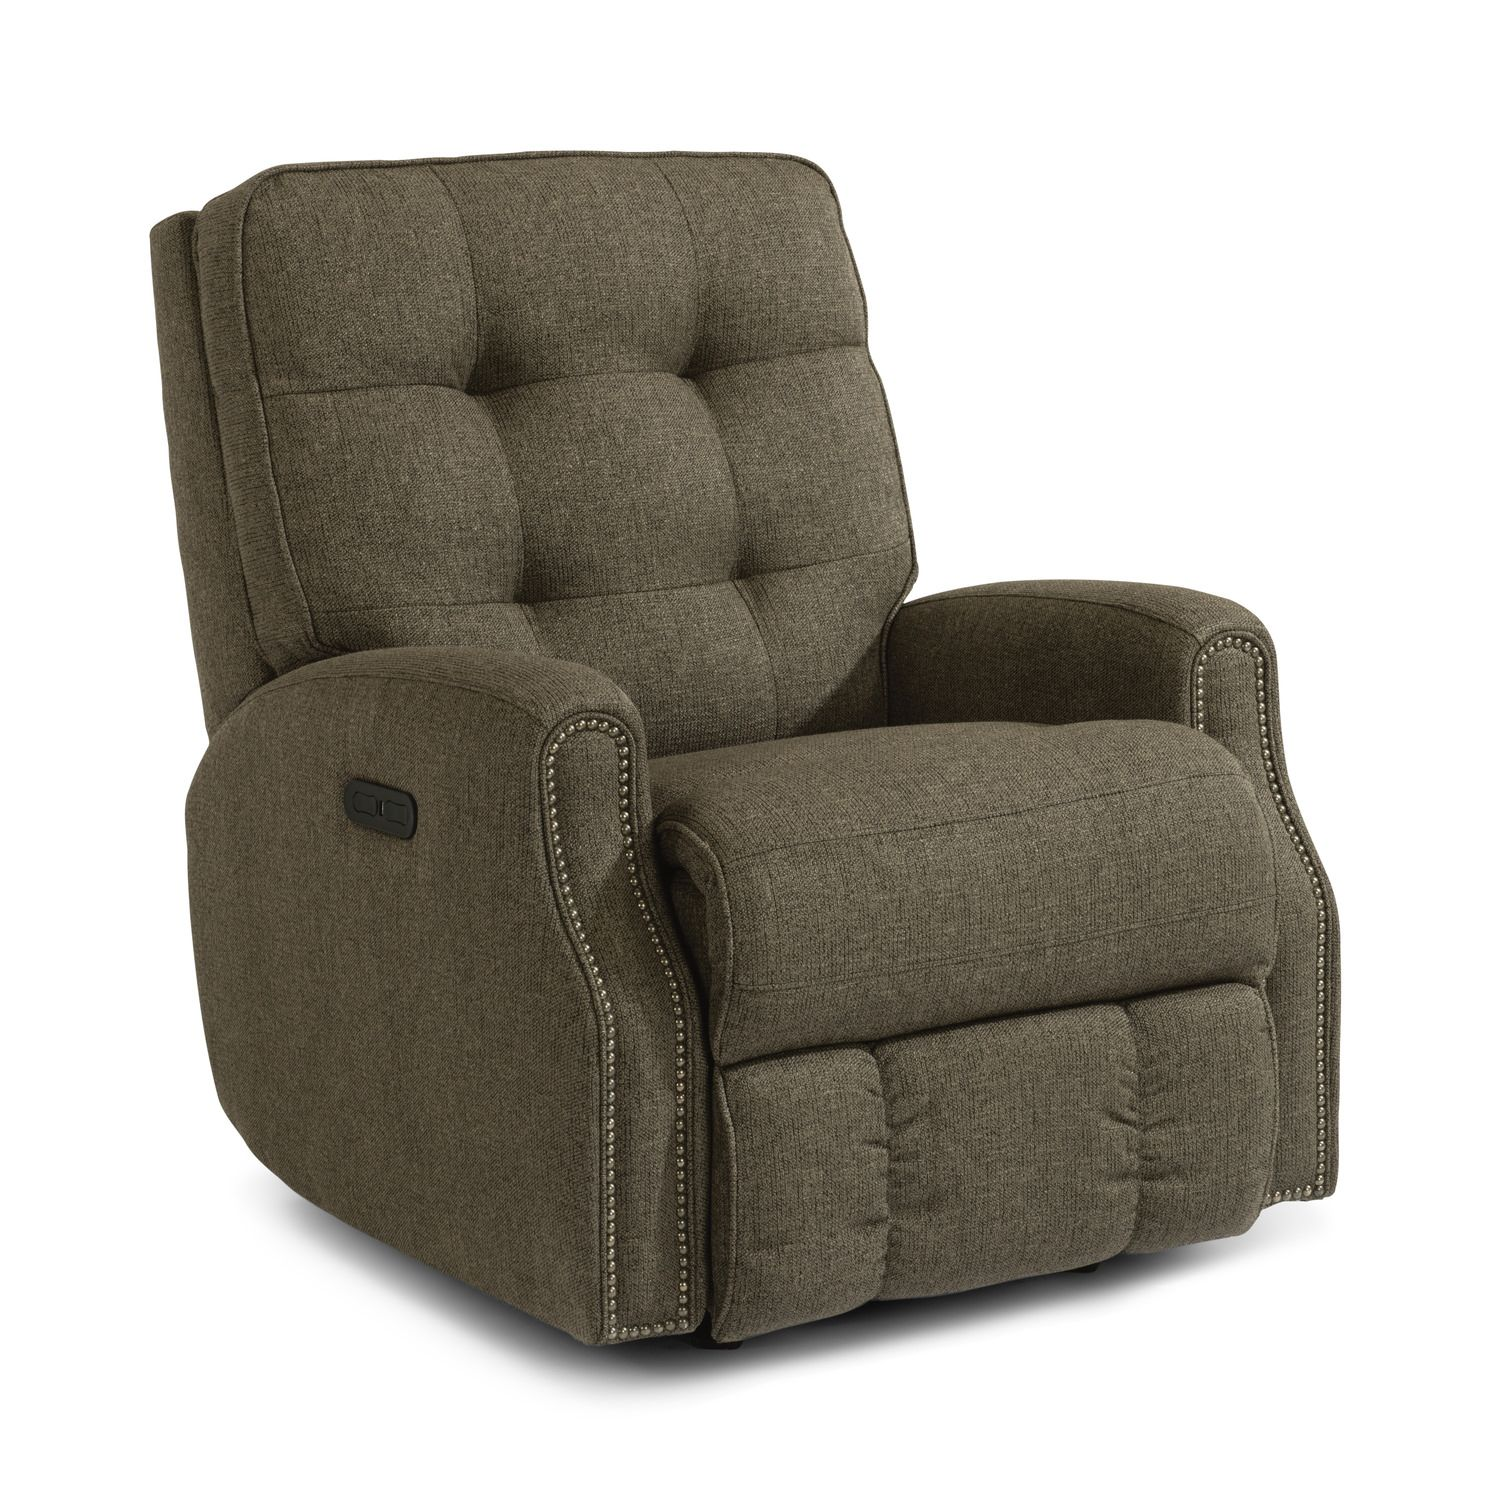 Devon Dual Rocking Recliner